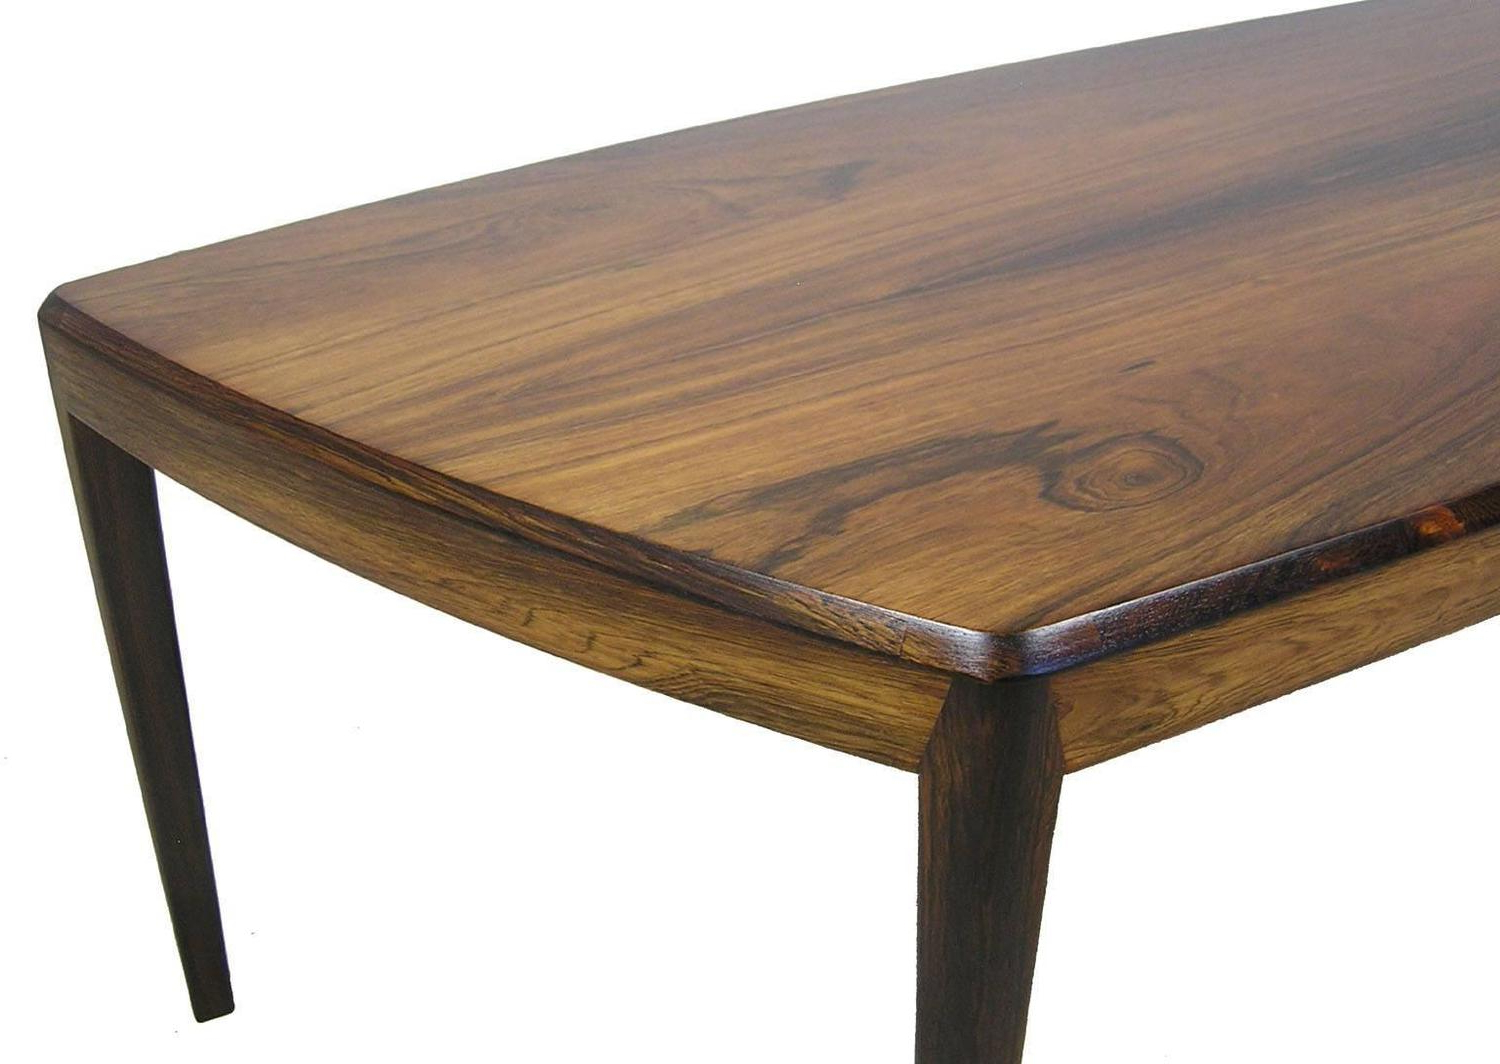 Popular 1960S Brazilian Rosewood Coffee Tablekai Kristiansen, Denmark Pertaining To Kai Large Cocktail Tables (View 15 of 20)